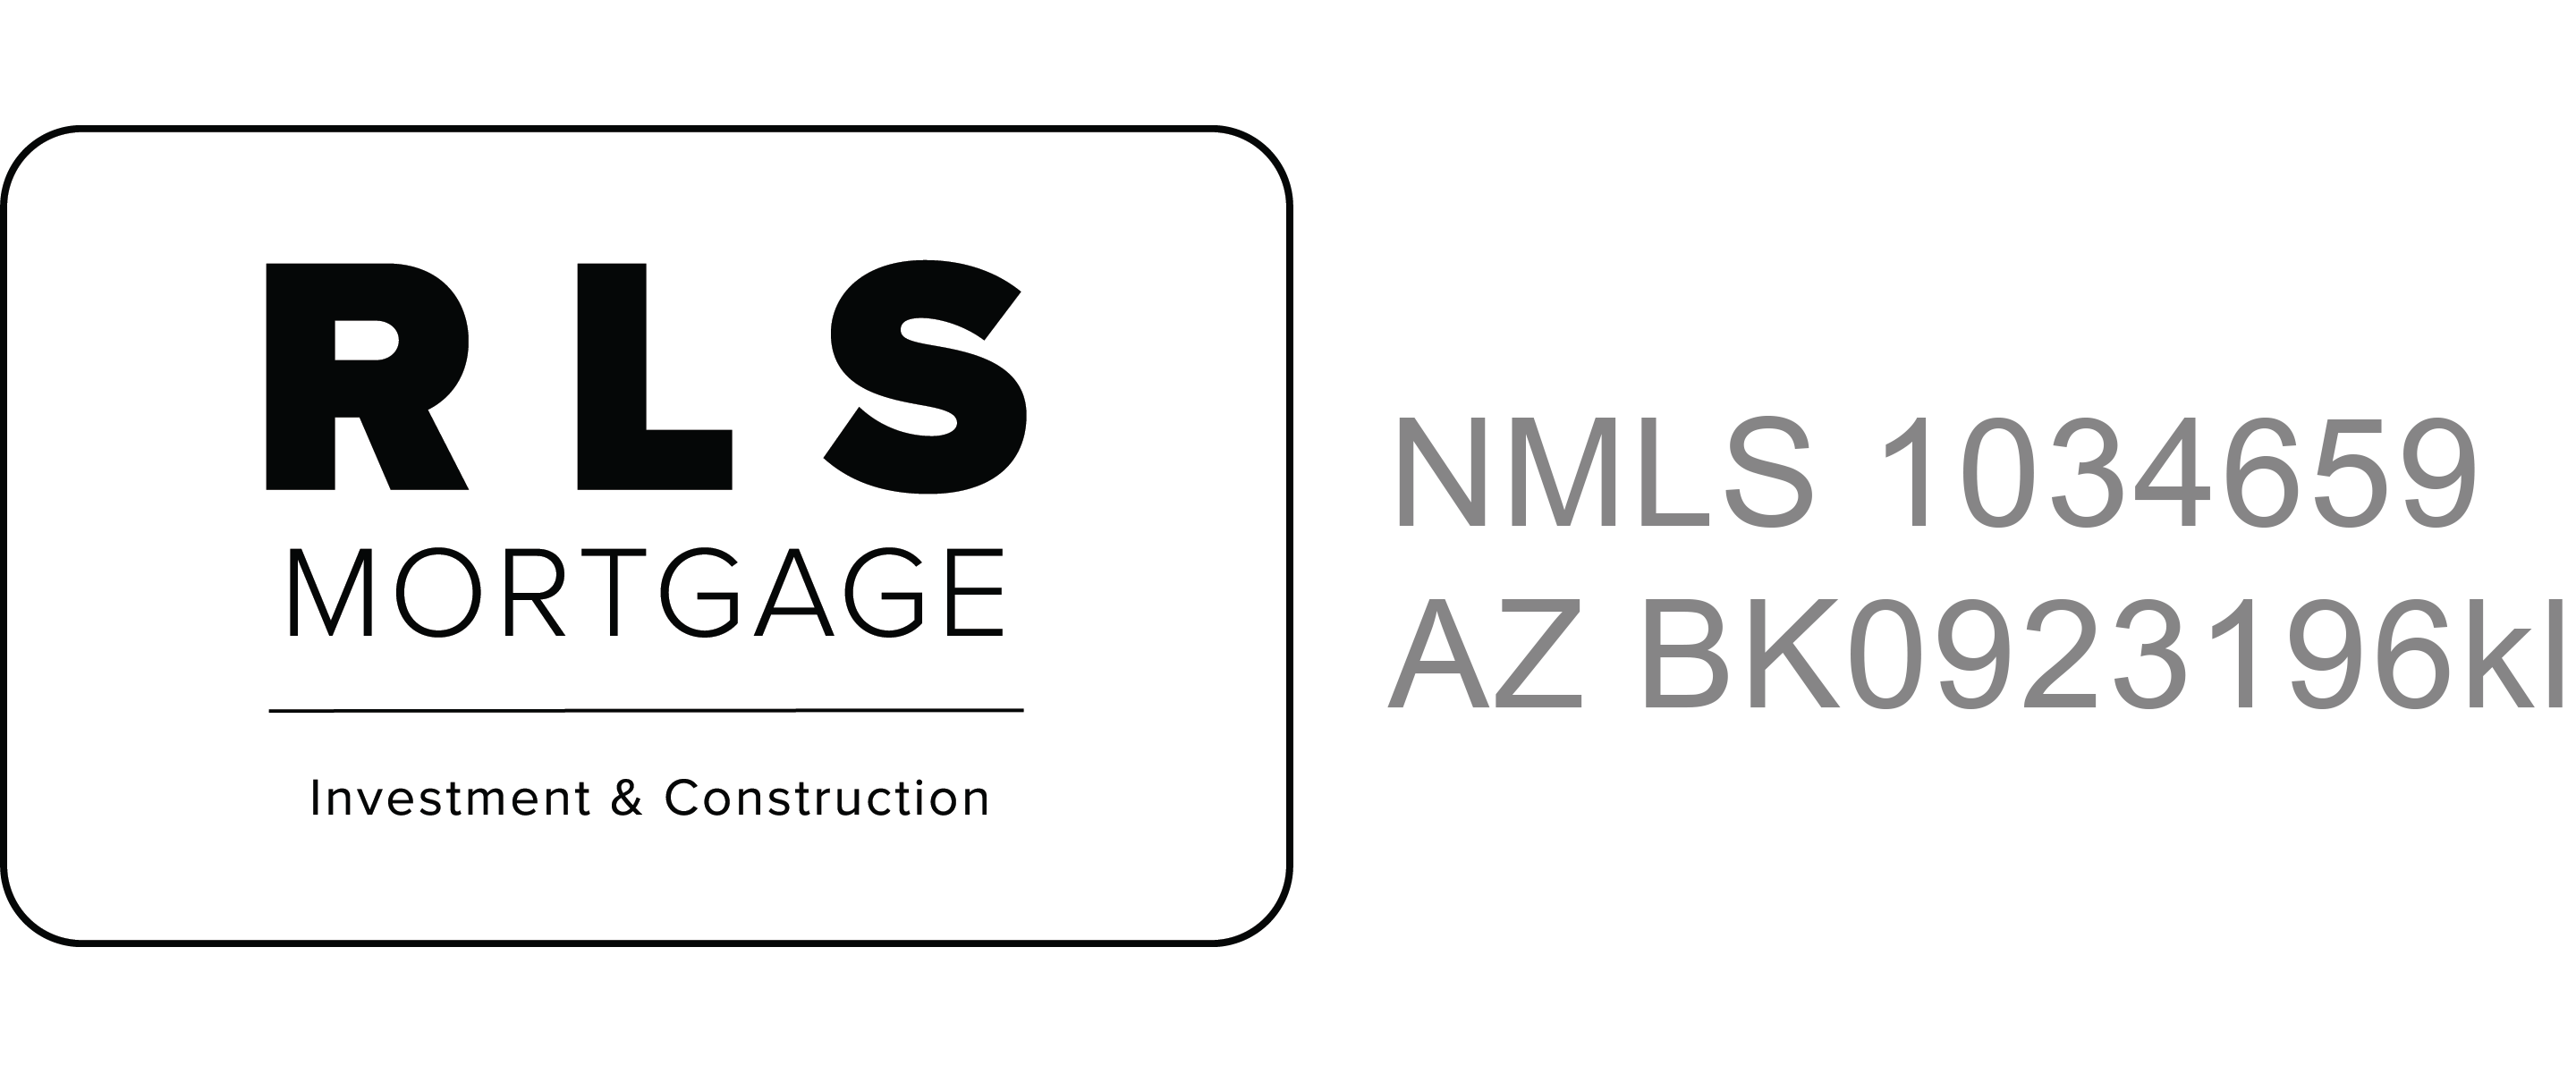 RLS mortgage logo